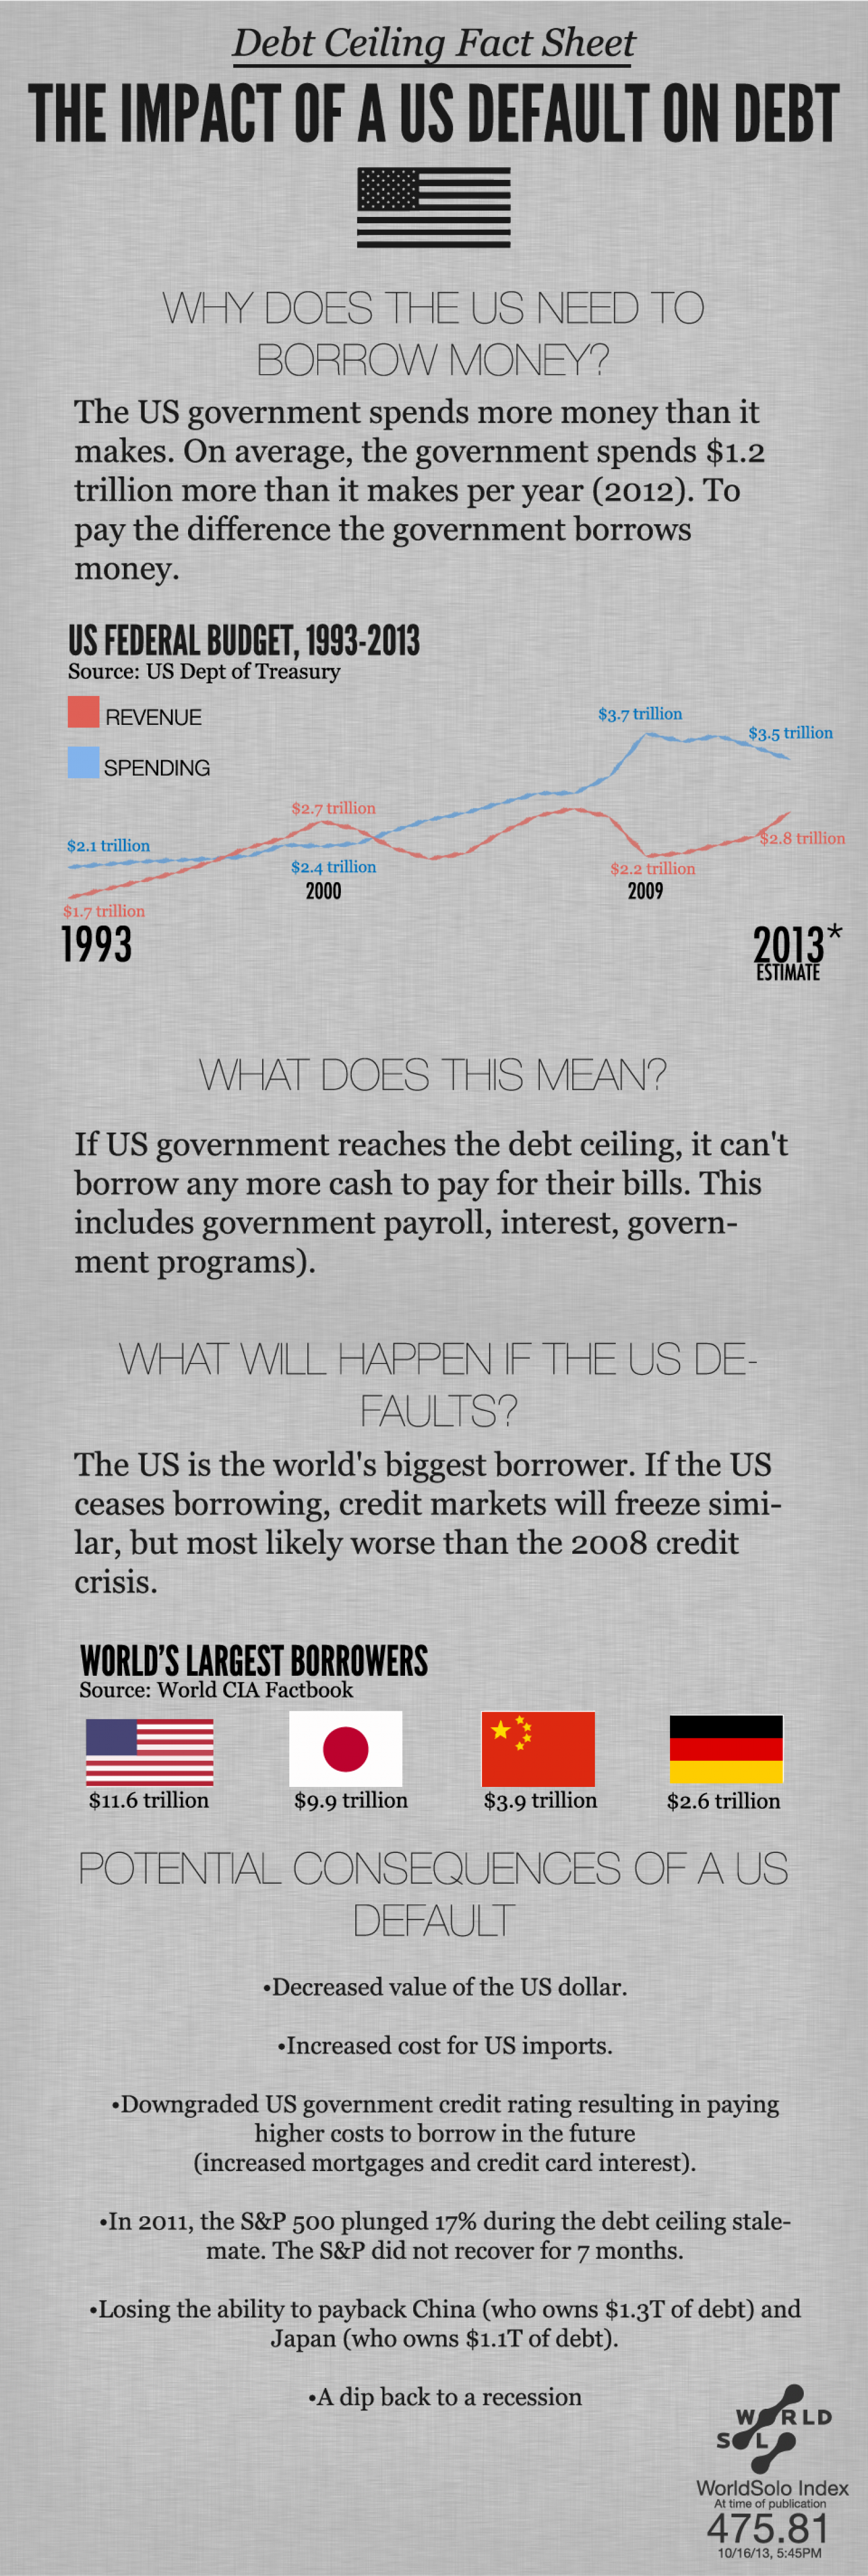 The Impact of a US Default on debt Infographic